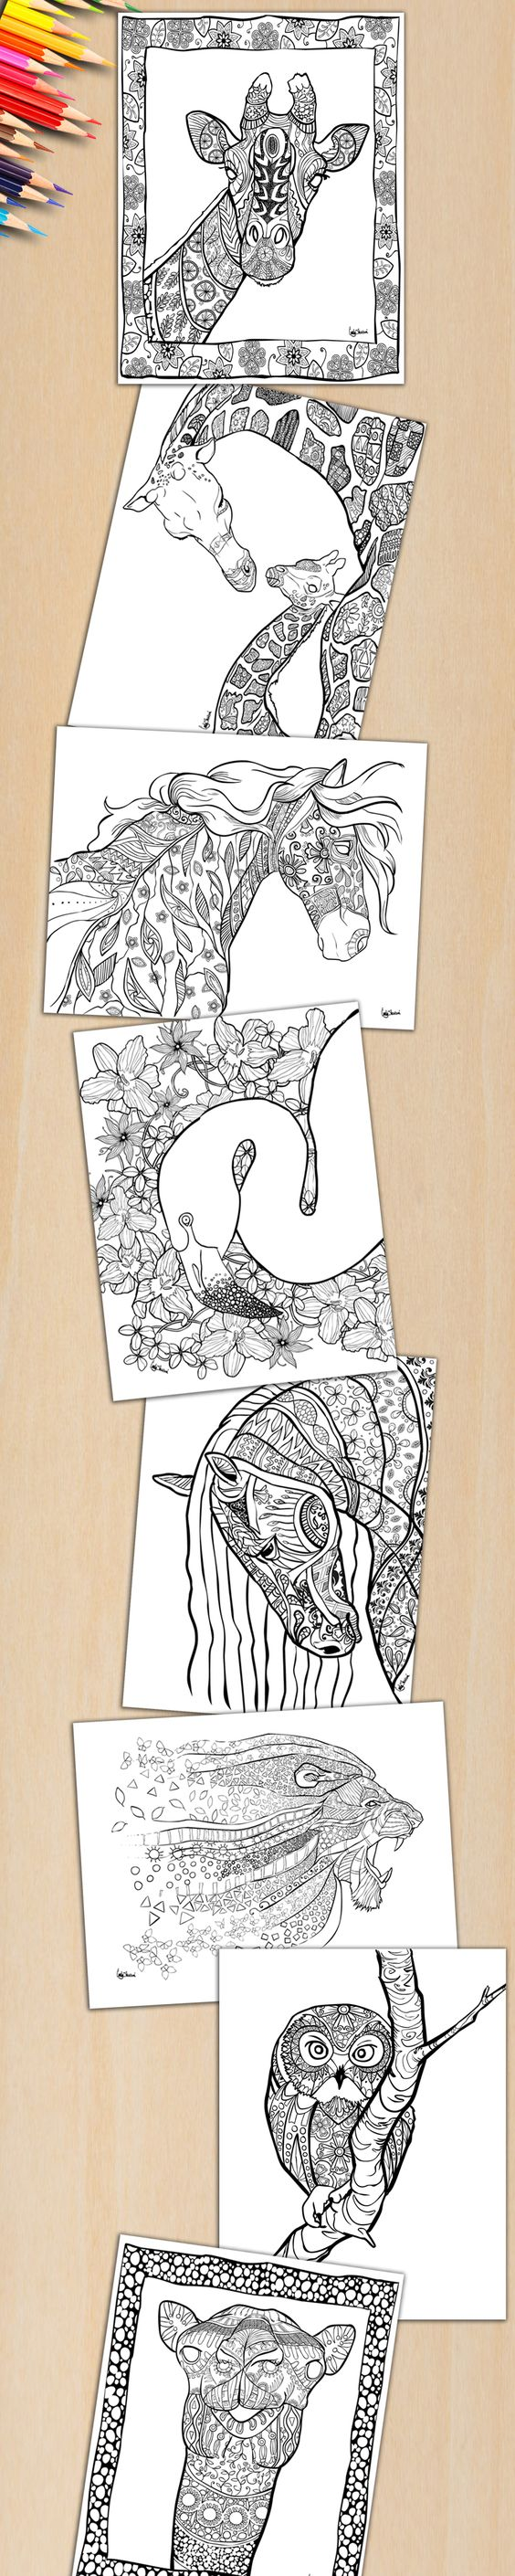 Colorful coloring book for adults download - If You Love Animals You Will Love These Beautiful Coloring Pages Which Animal Would Like To Color First Download This Adult Coloring Book